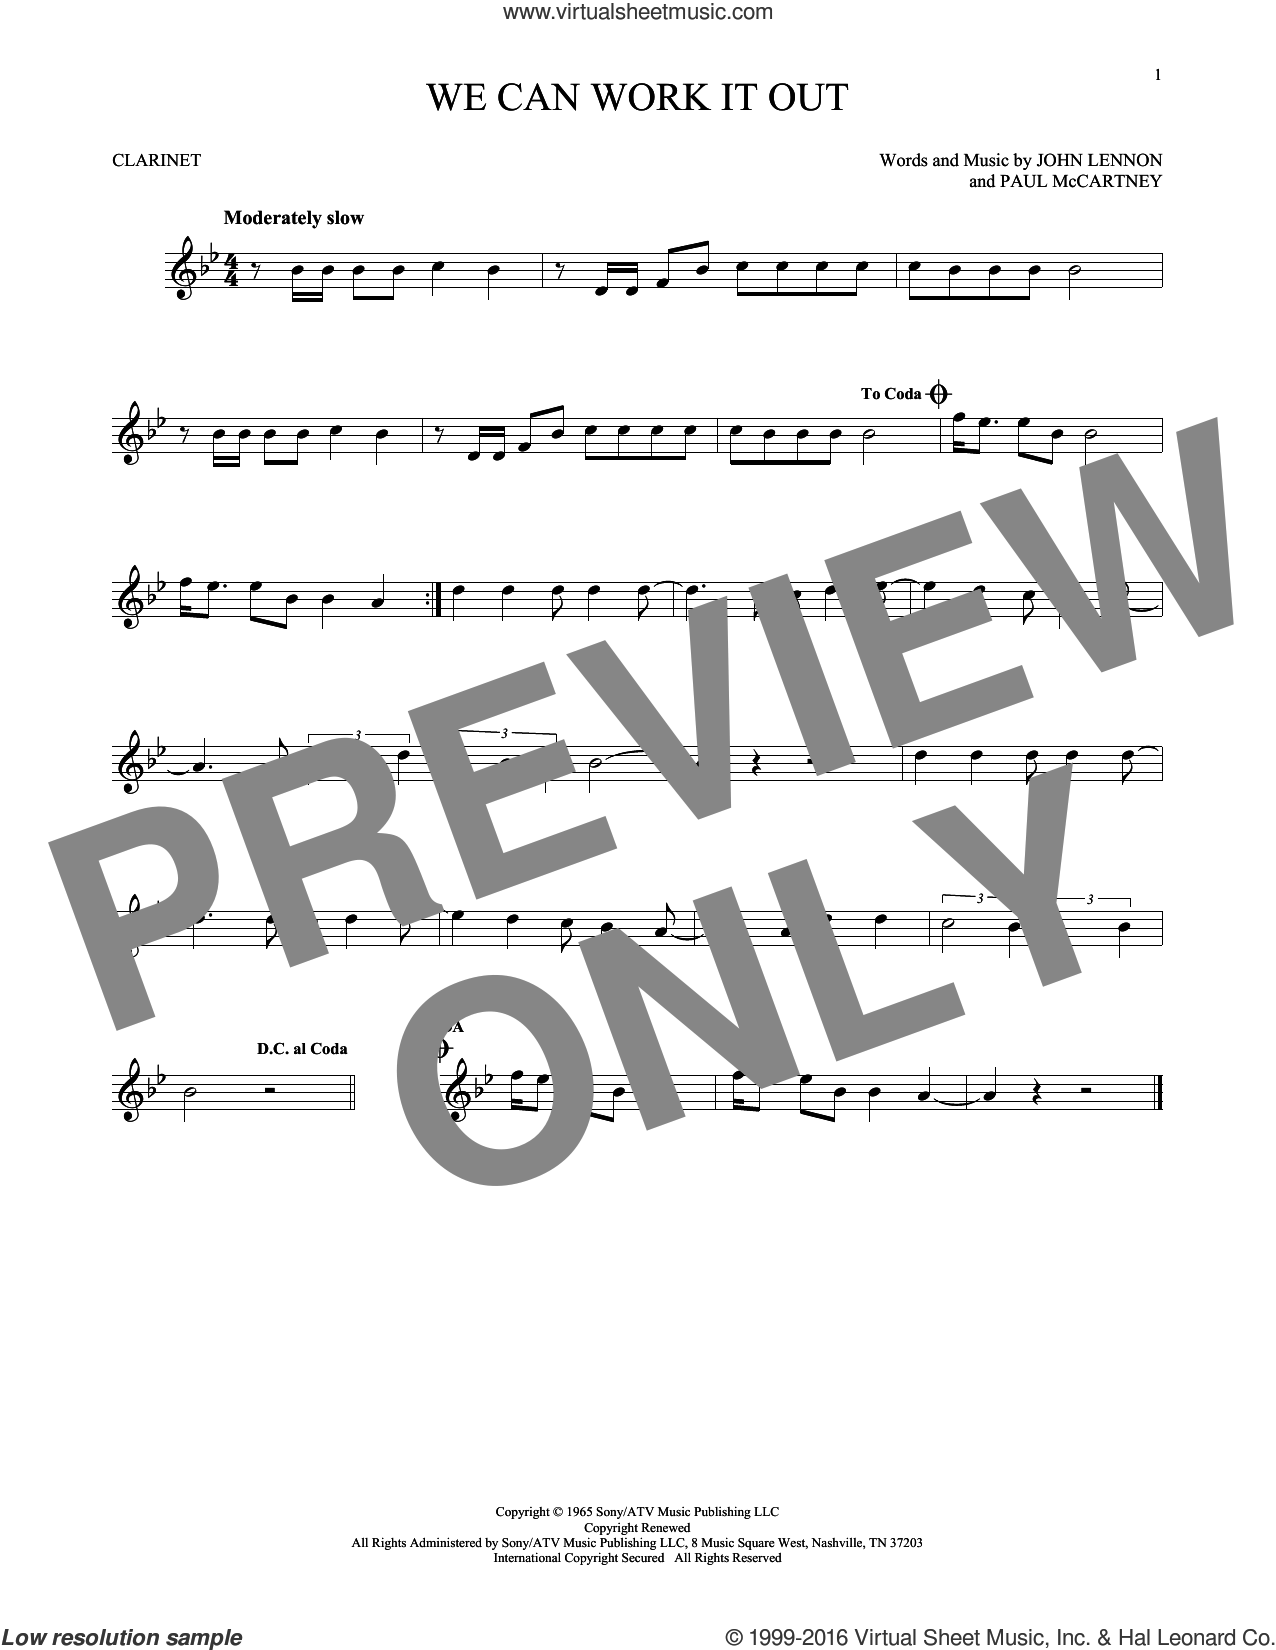 We Can Work It Out sheet music for clarinet solo by The Beatles, John Lennon and Paul McCartney, intermediate skill level